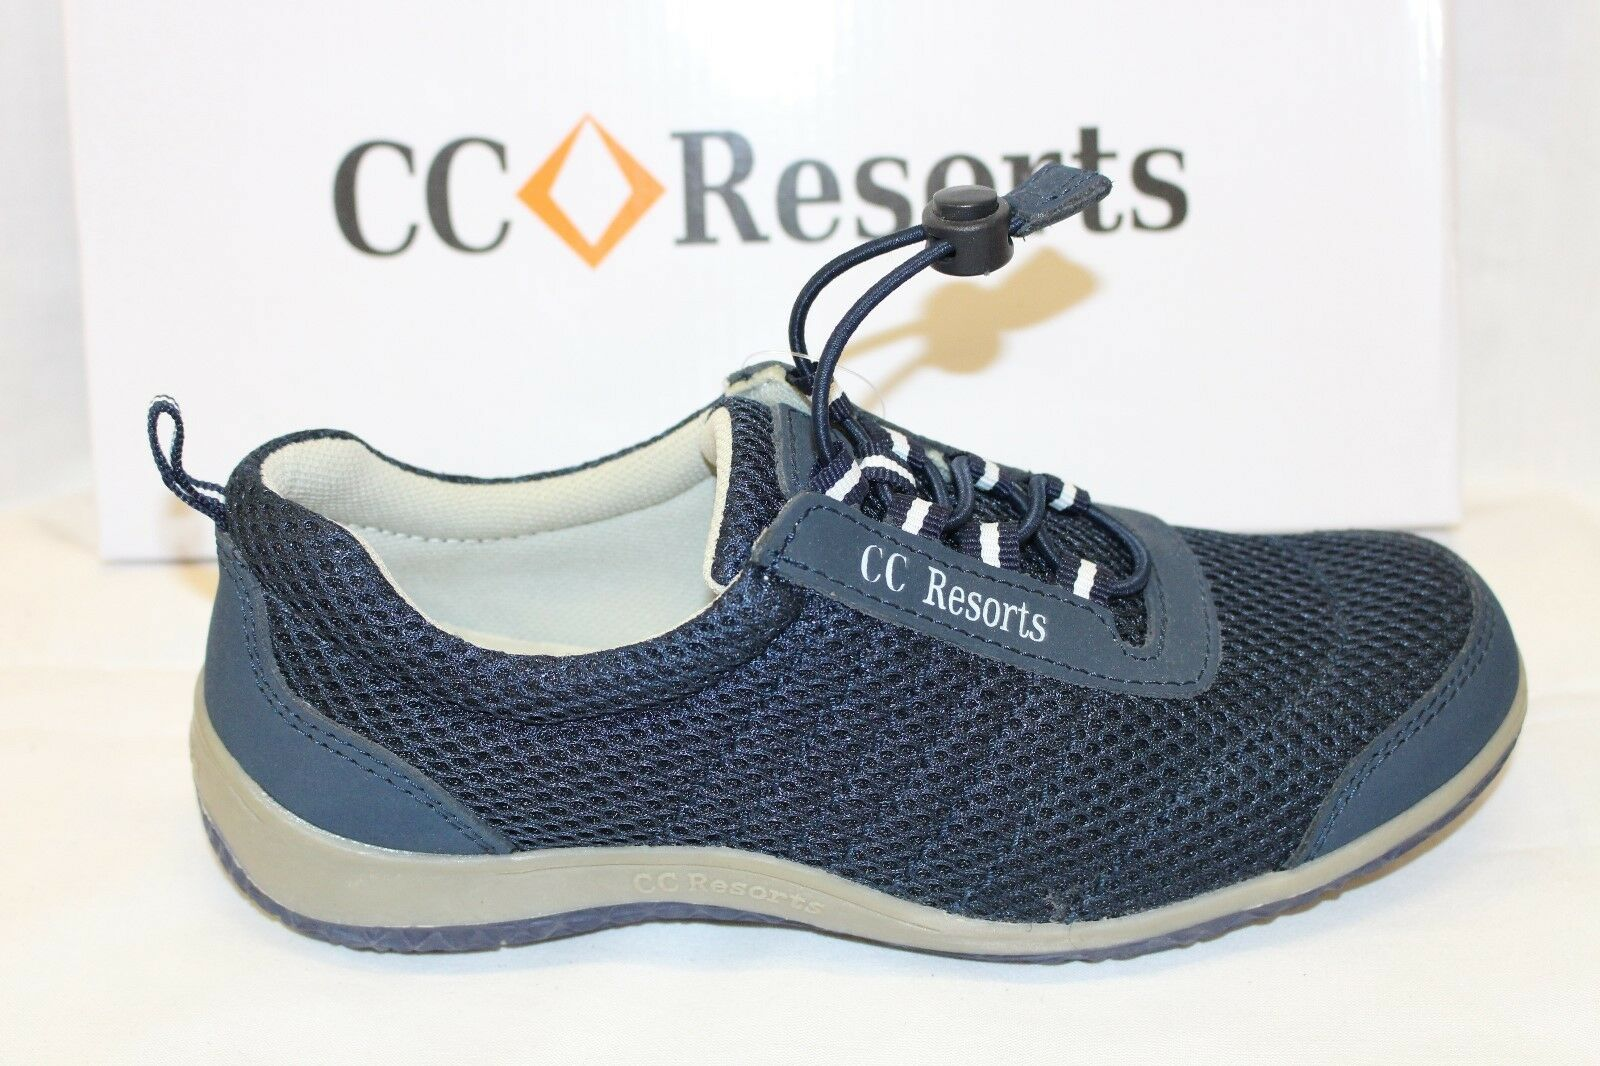 LADIES SHOES FOOTWEAR - CC Resorts Sandra lace shoe navy